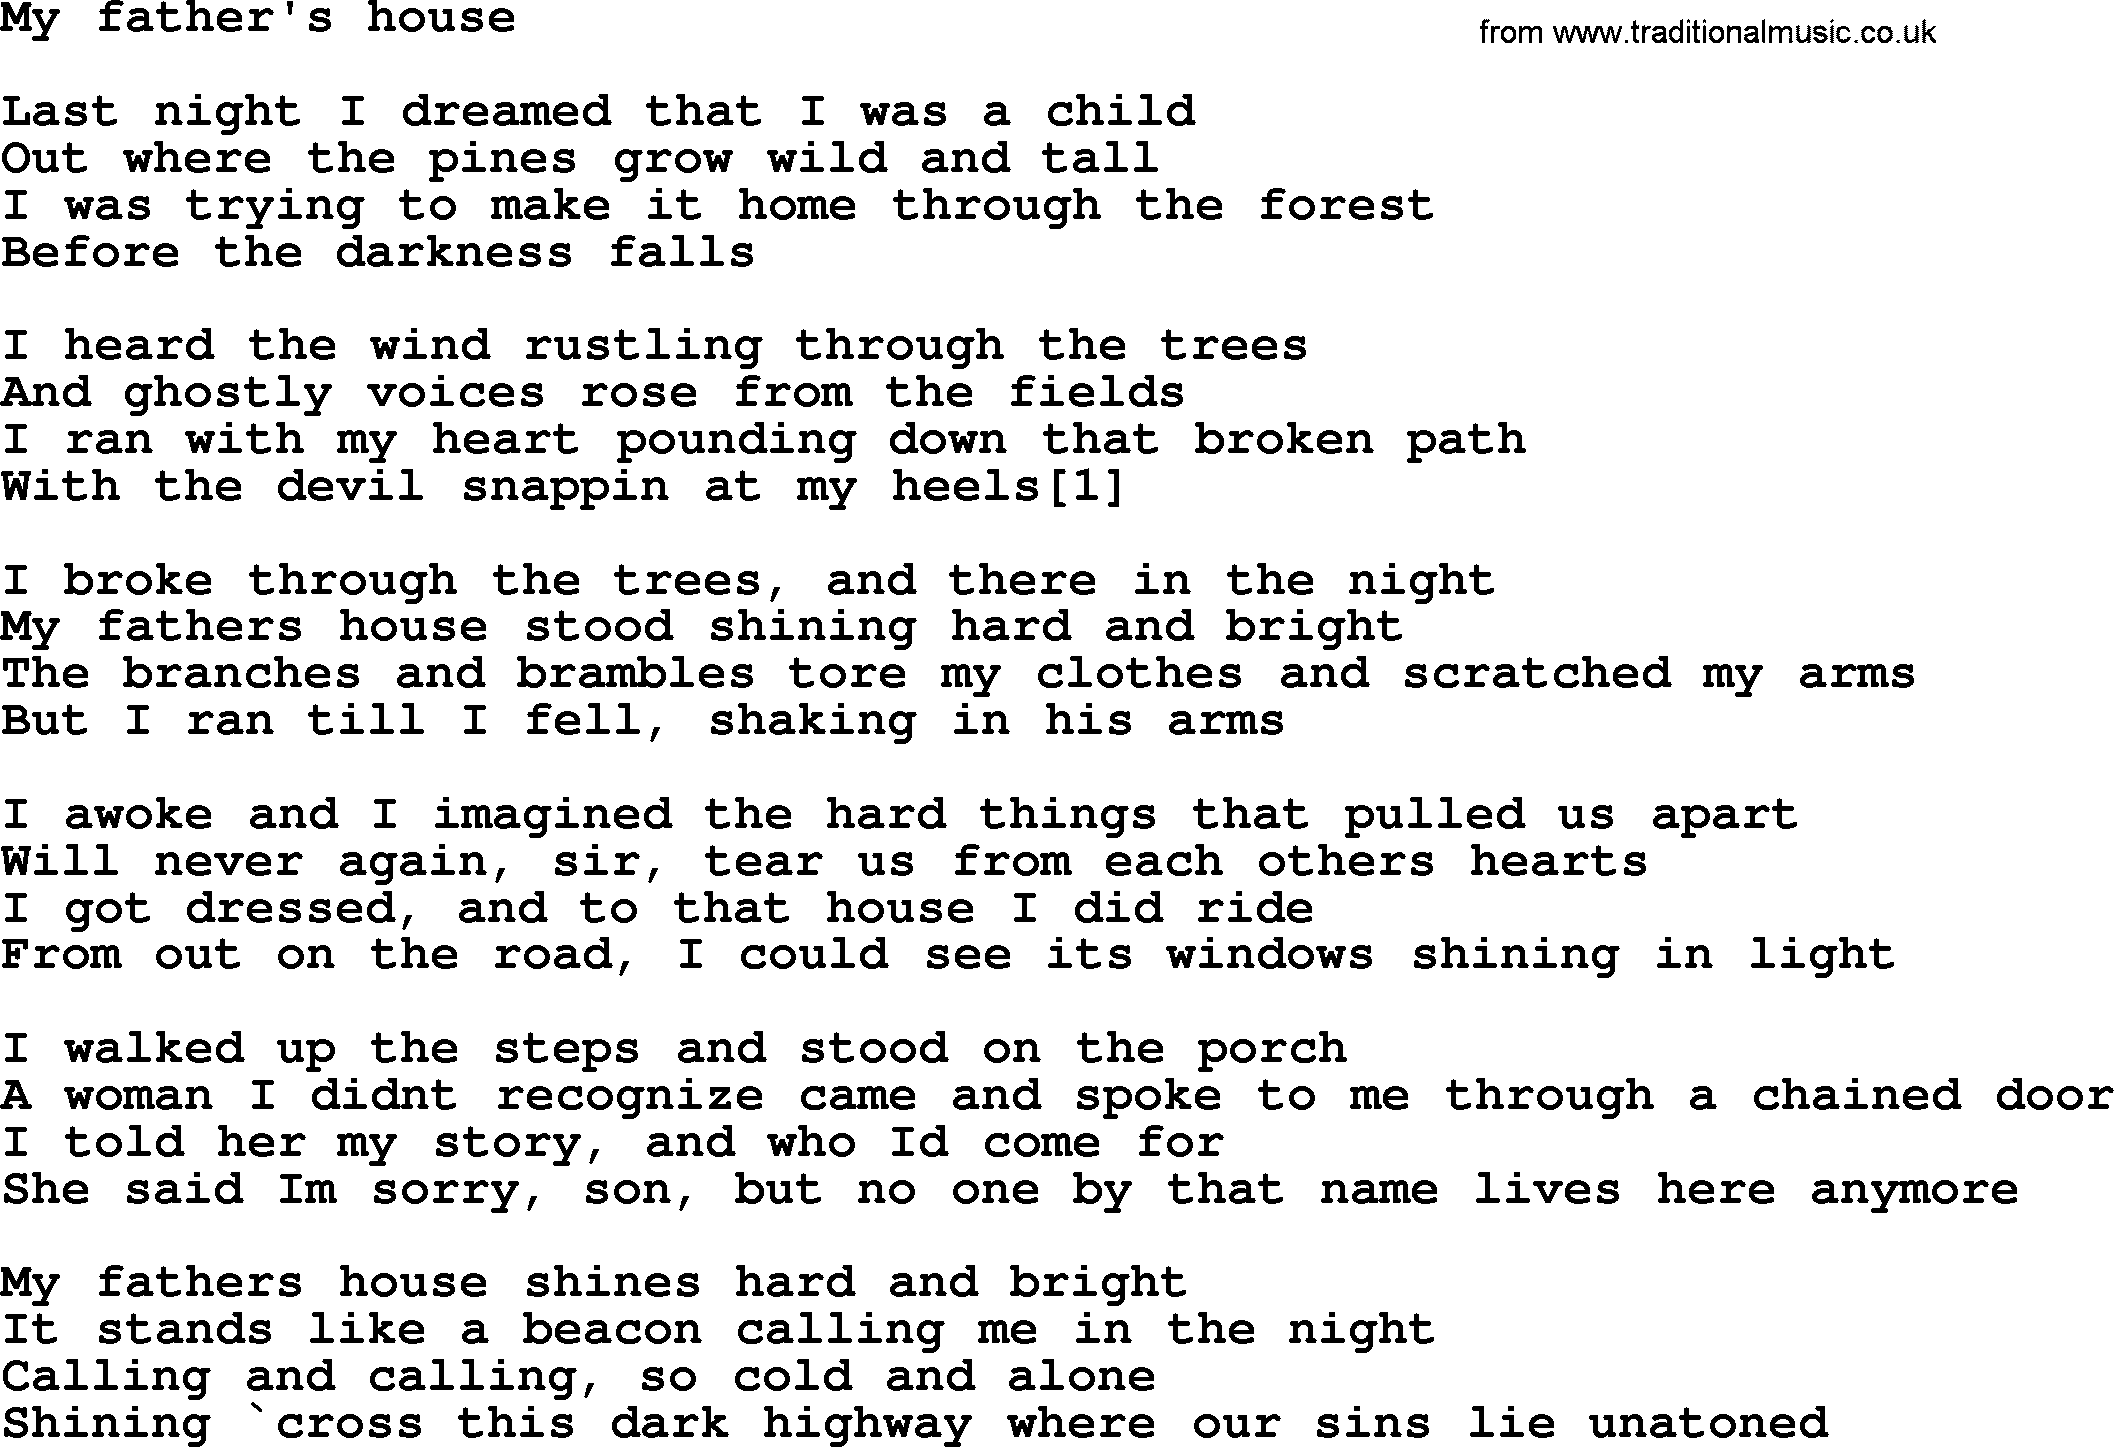 Bruce Springsteen song My Fathers House lyrics